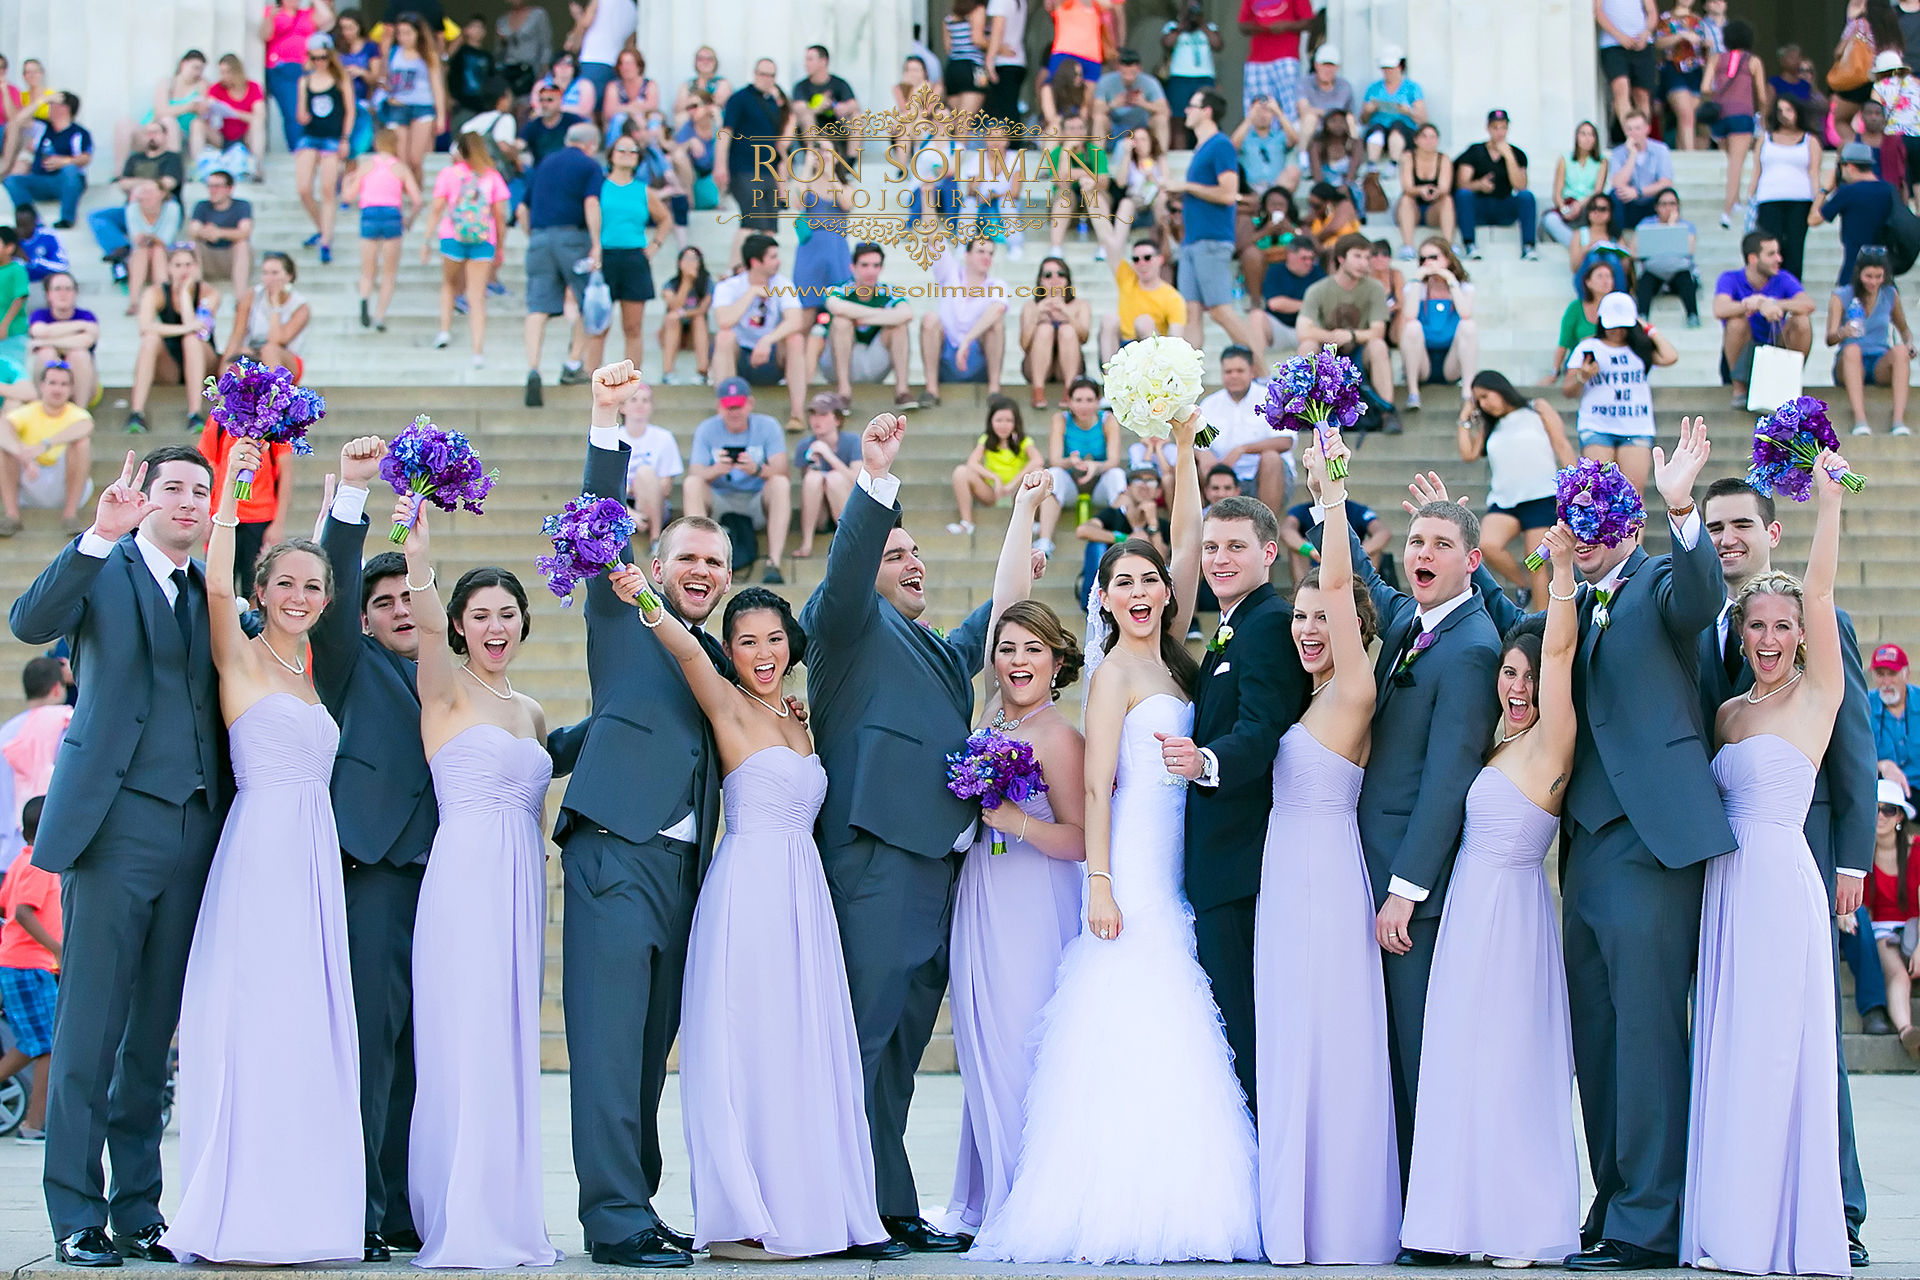 bridal party photo at the Lincoln Memorial in Washington DC